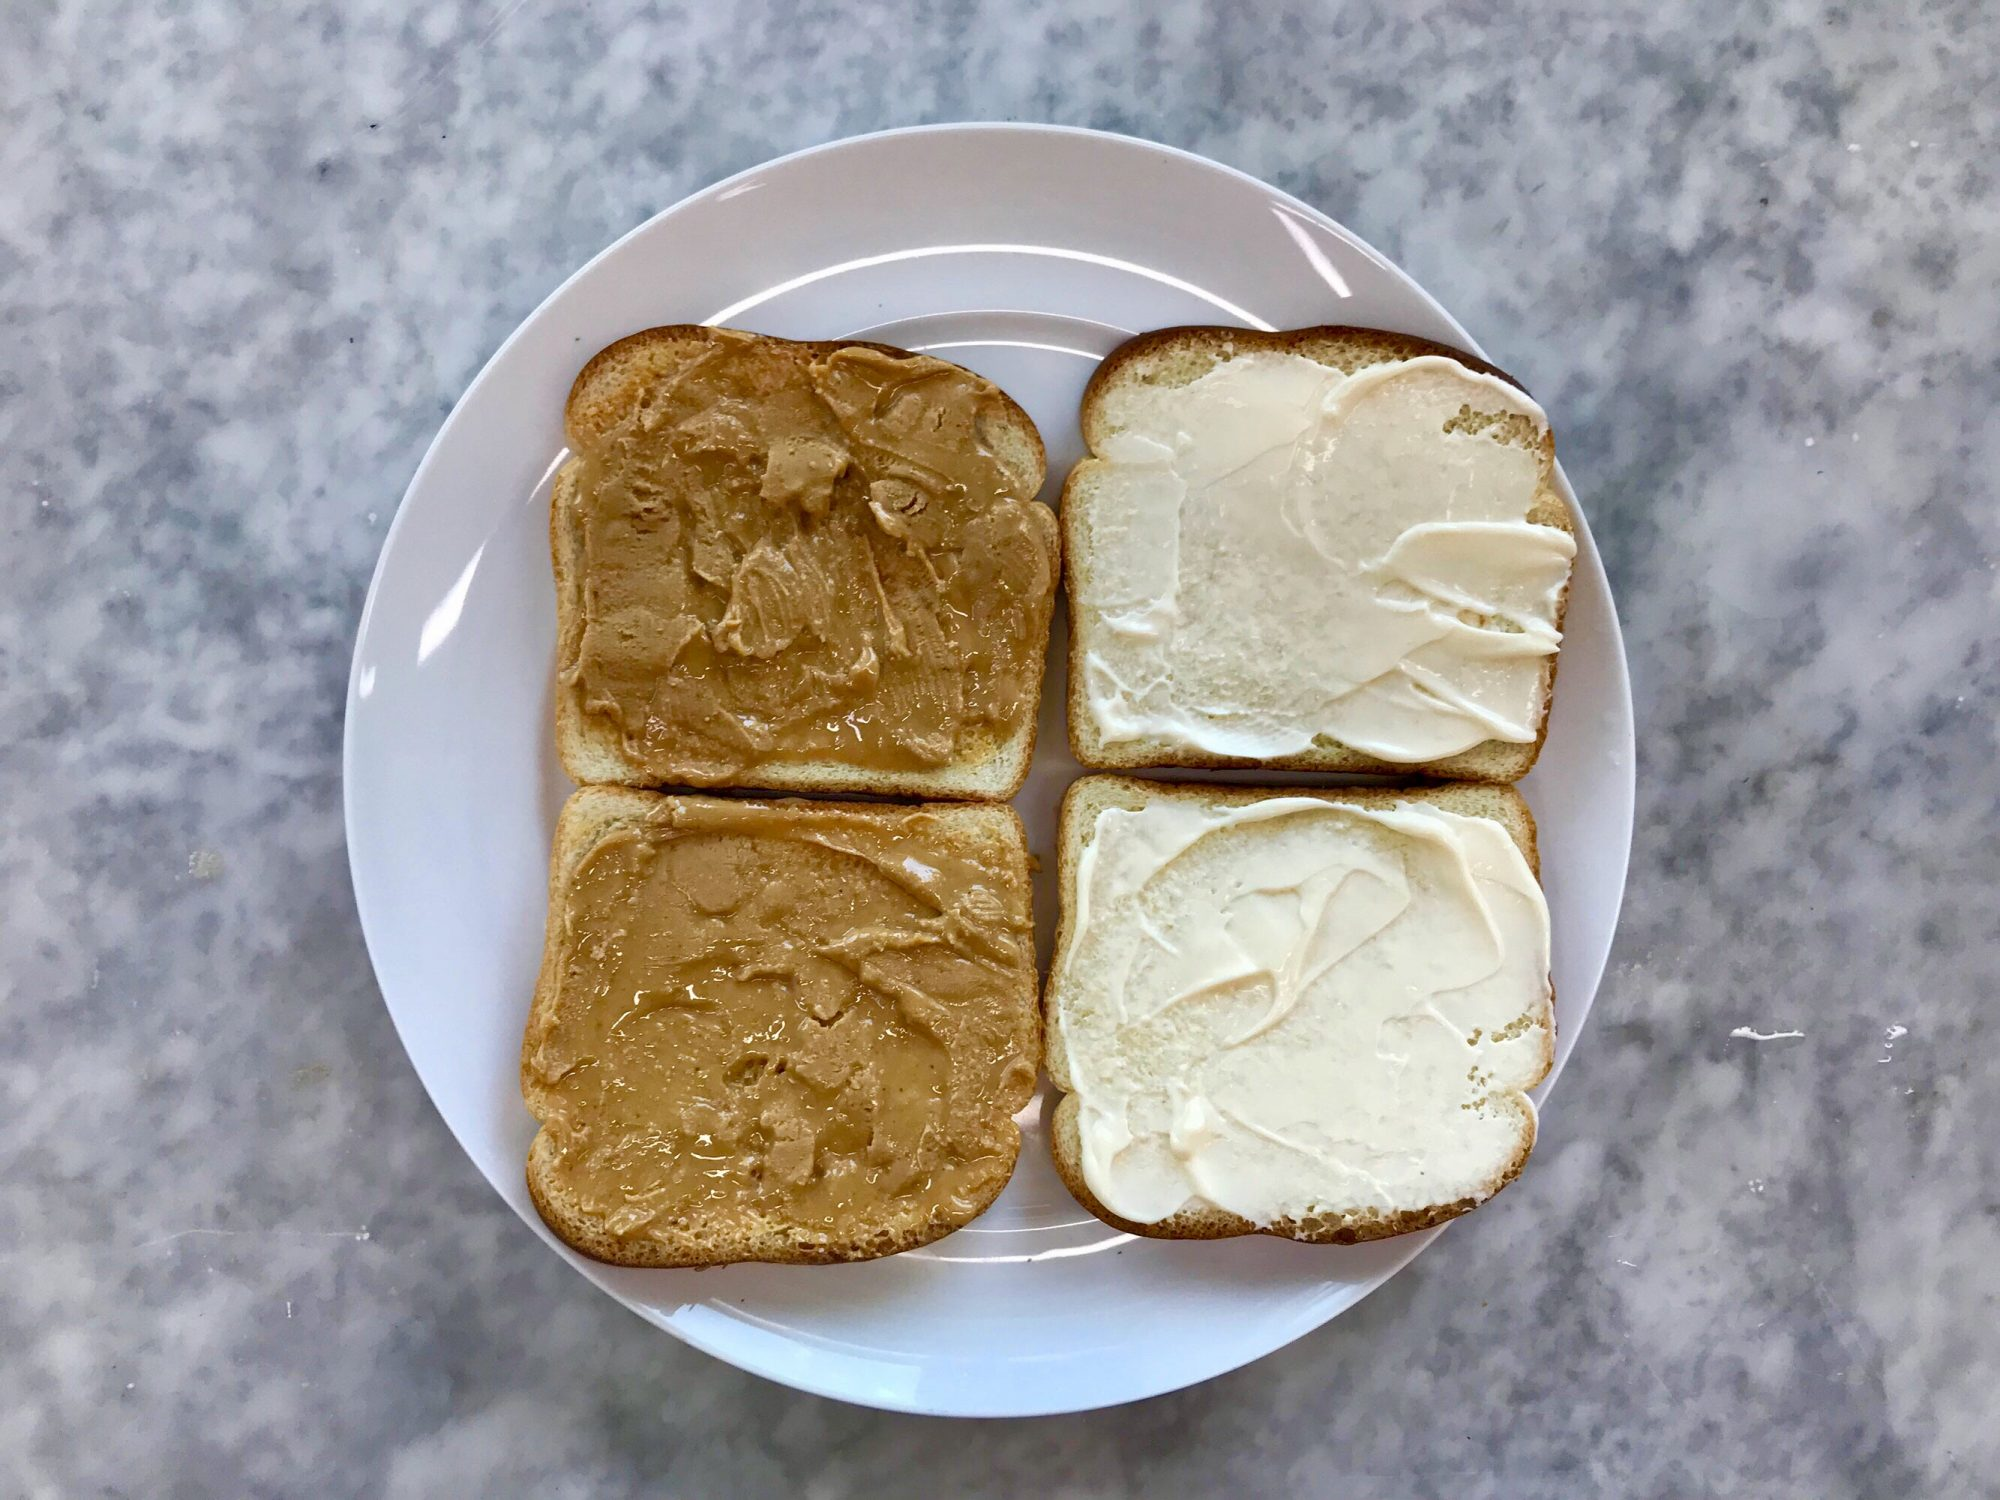 peanut butter and mayonnaise open sandwich